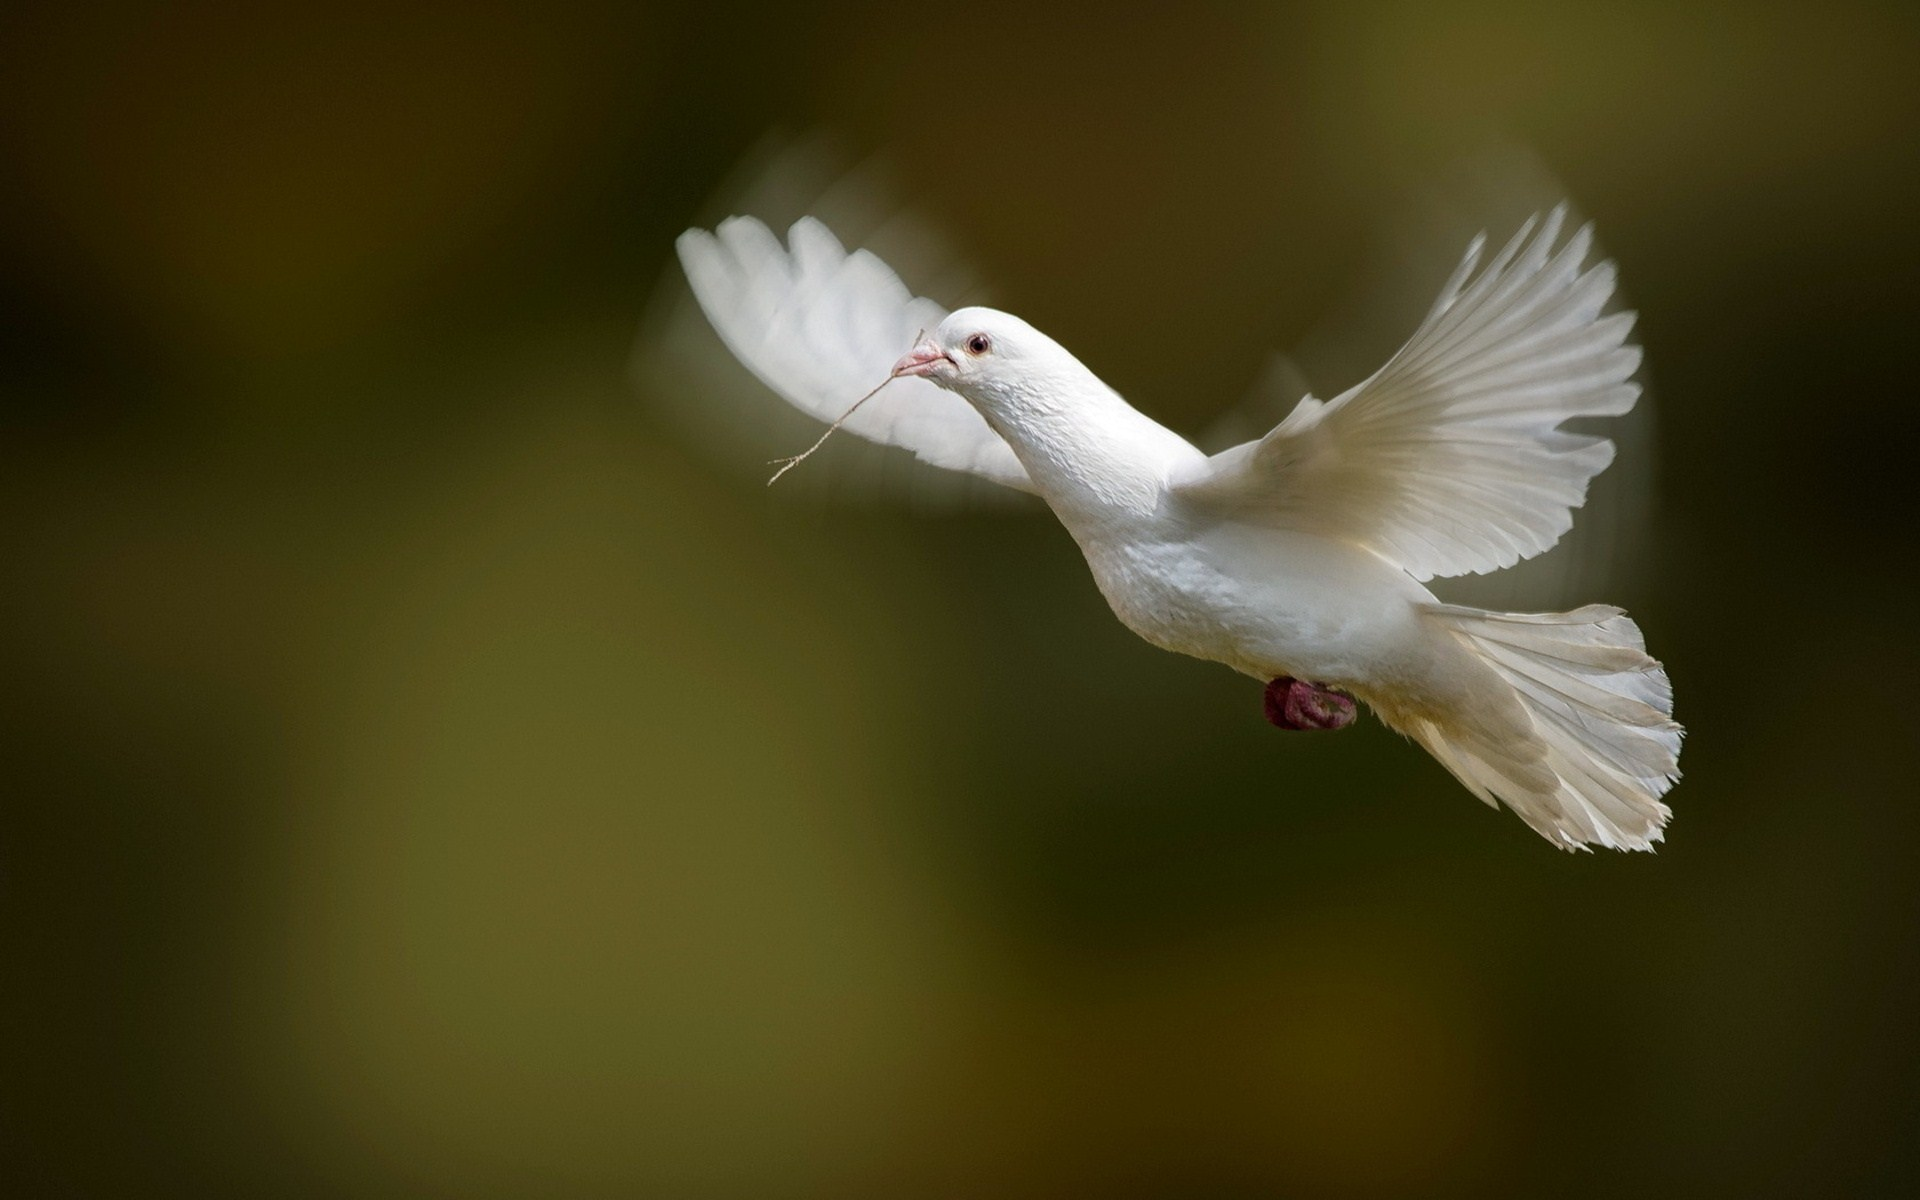 white dove bird flying photo wallpaper 1920x1200   Magic4Wallscom 1920x1200